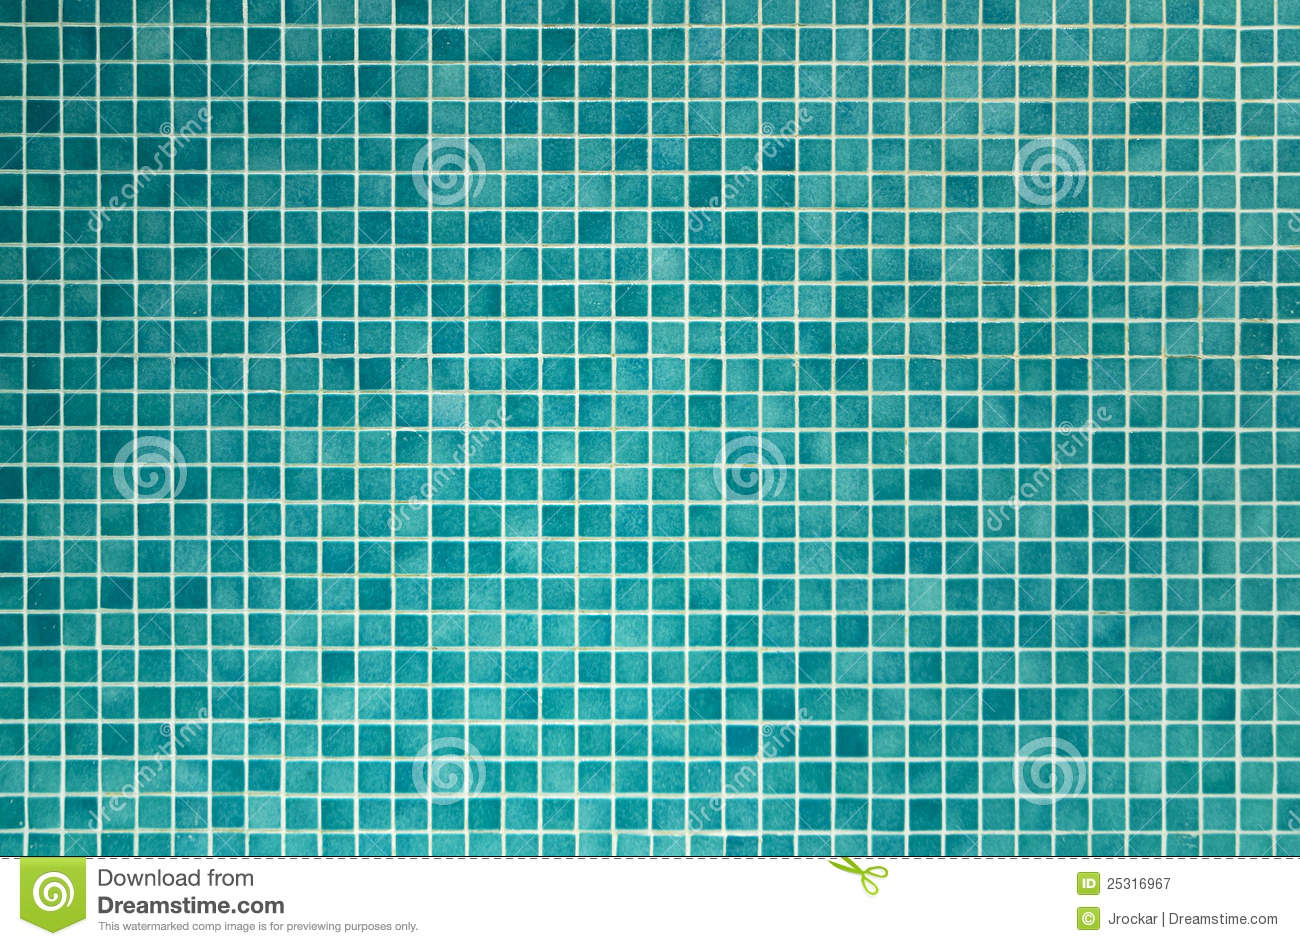 Azulejos Baño Verde Agua:Blue Green Mosaic Floor Tile for Bathroom